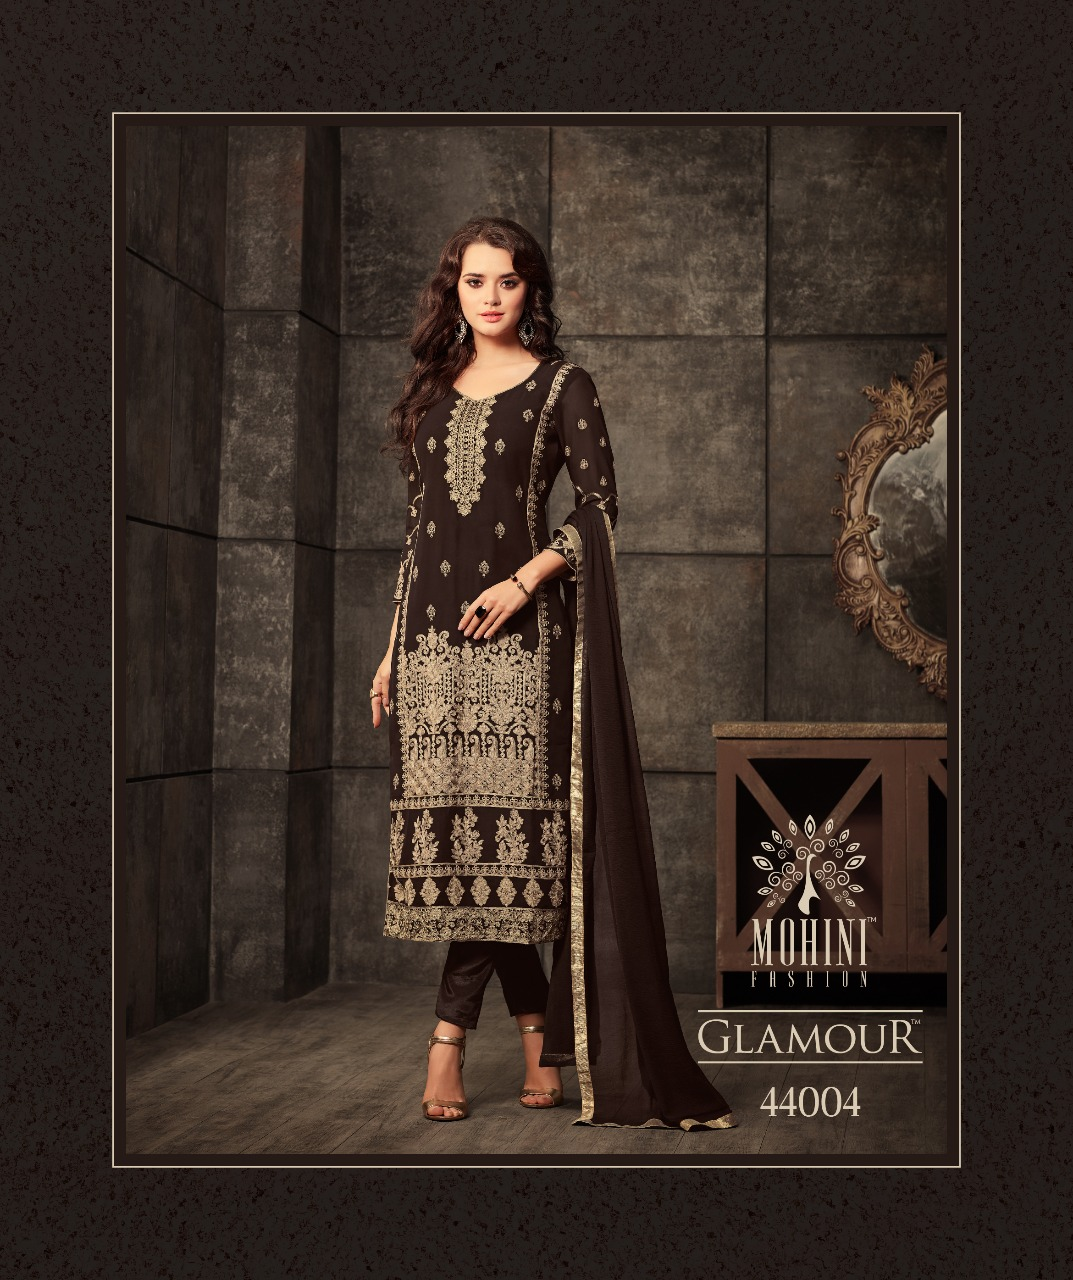 Mohini Fashion Glamour 44004B